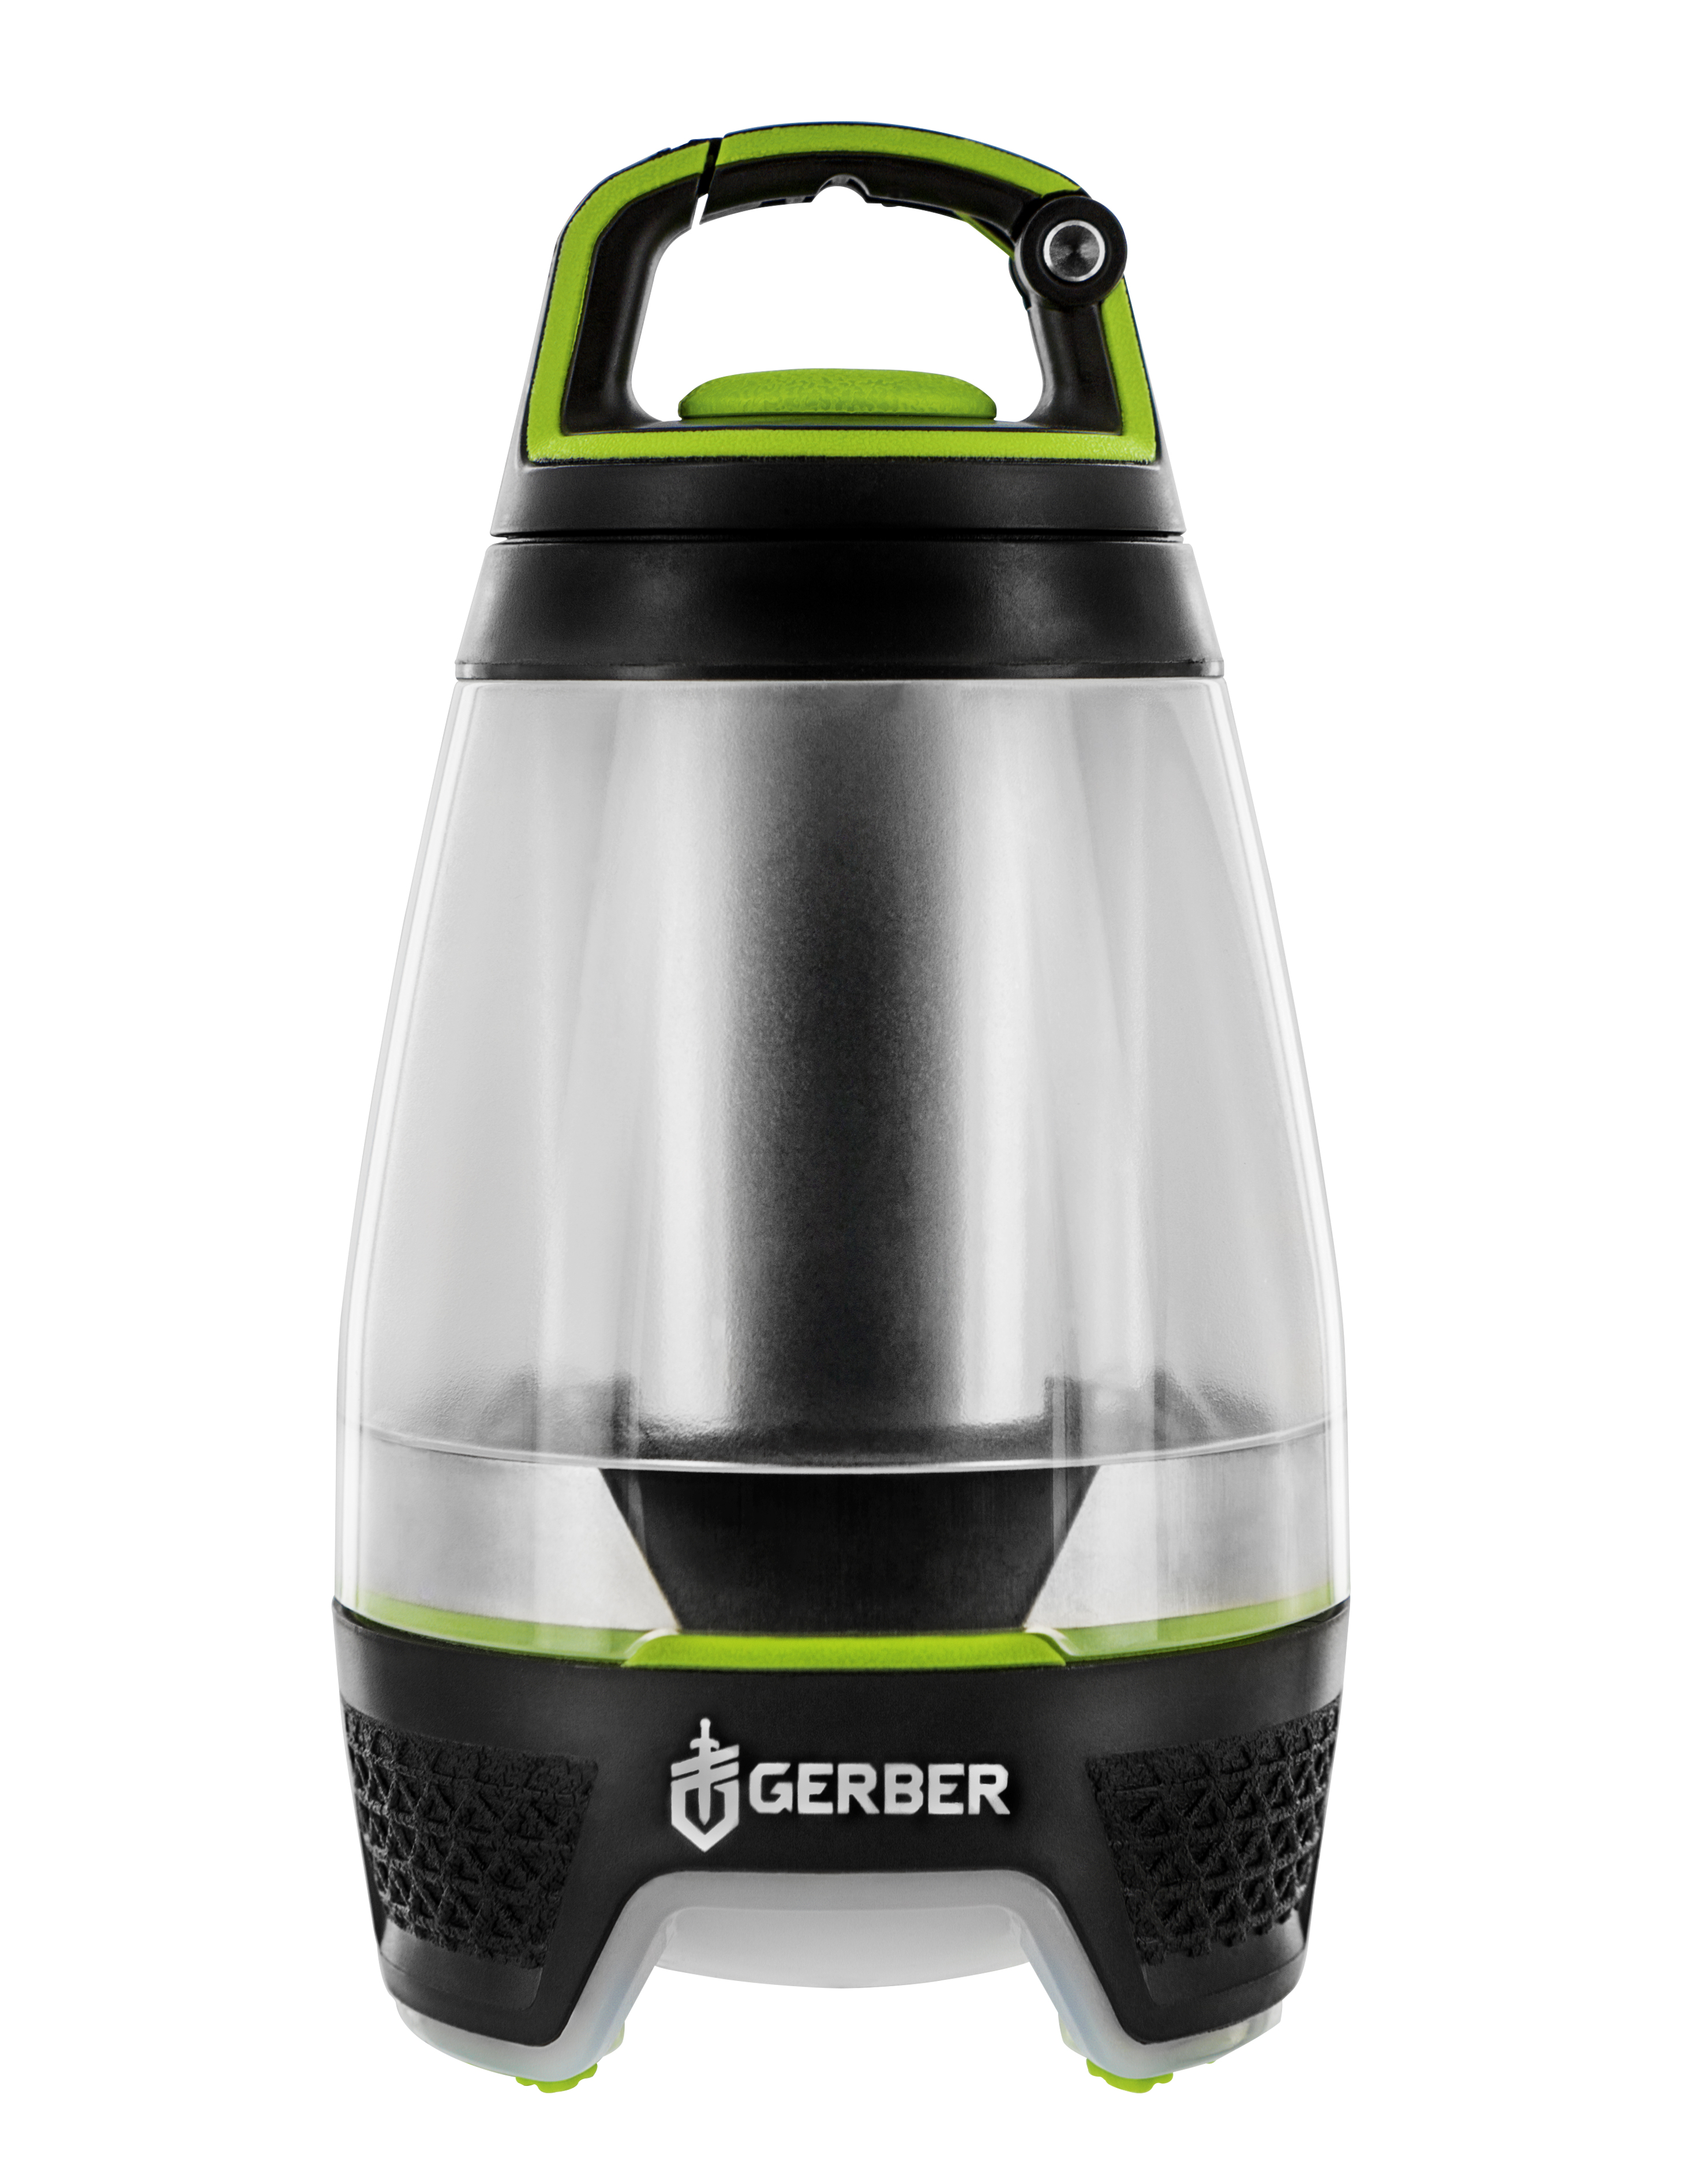 30-000933 - GERBER Freescape Small Lantern Box